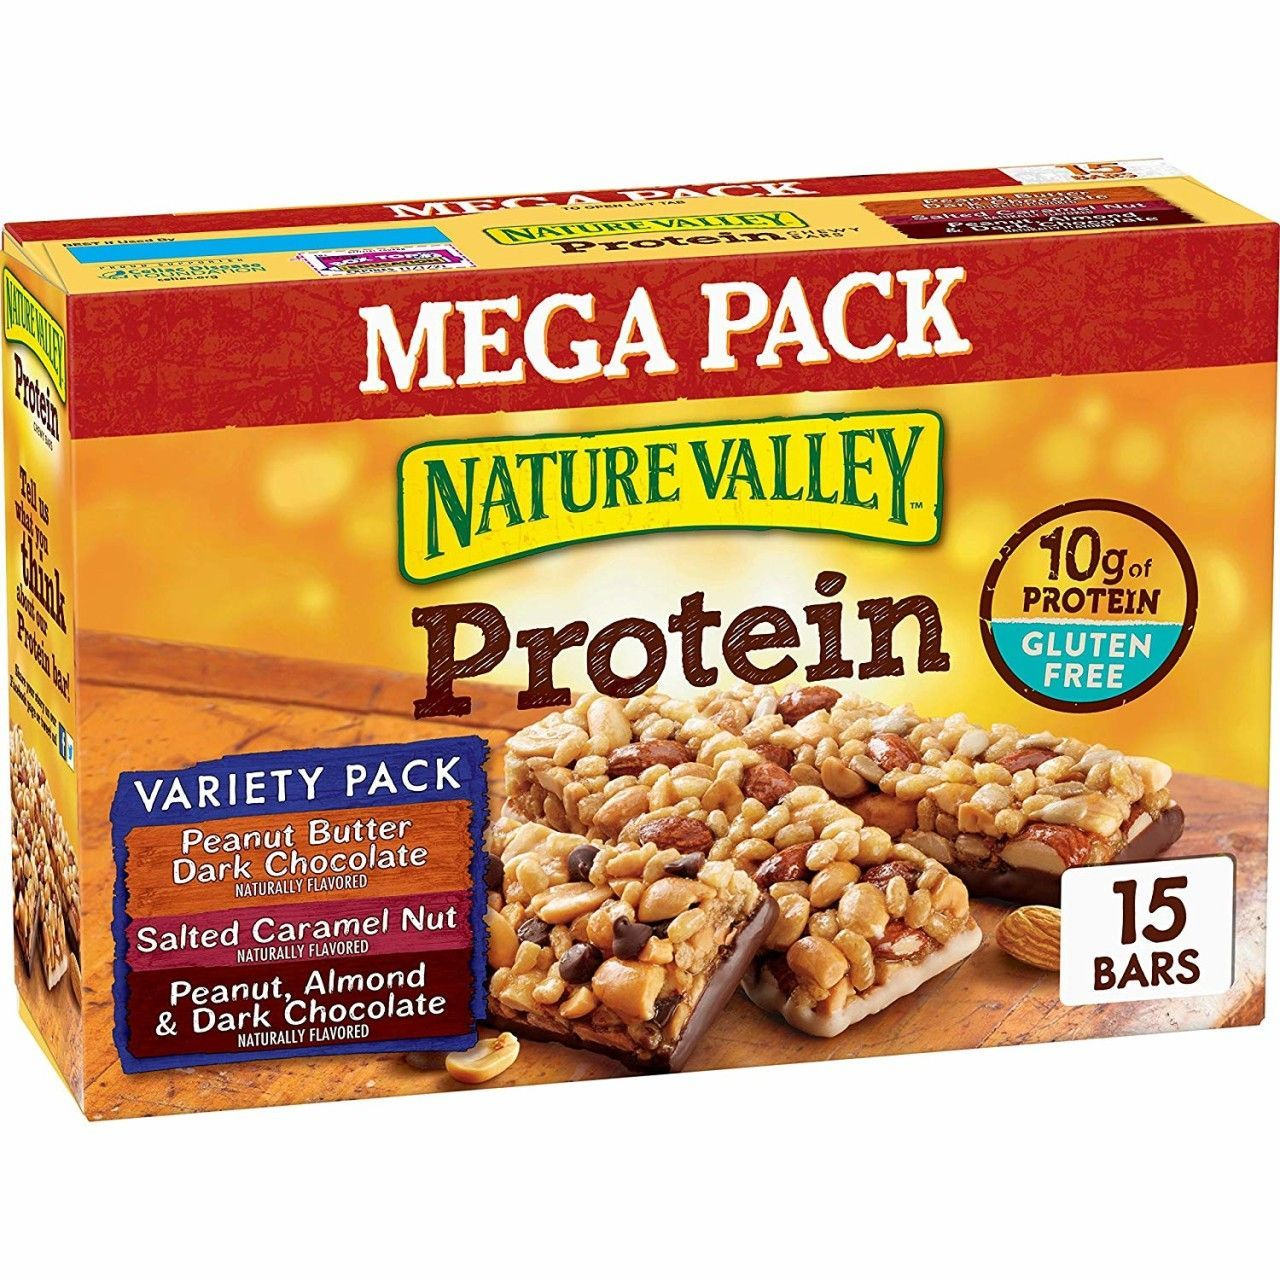 Nature Valley Protein Granola Bar Variety Pack As Low As 7 00 Shipped Become A Coupon Queen Nature Valley Protein Granola Bar Variety Pack As Low As 7 0 In 2020